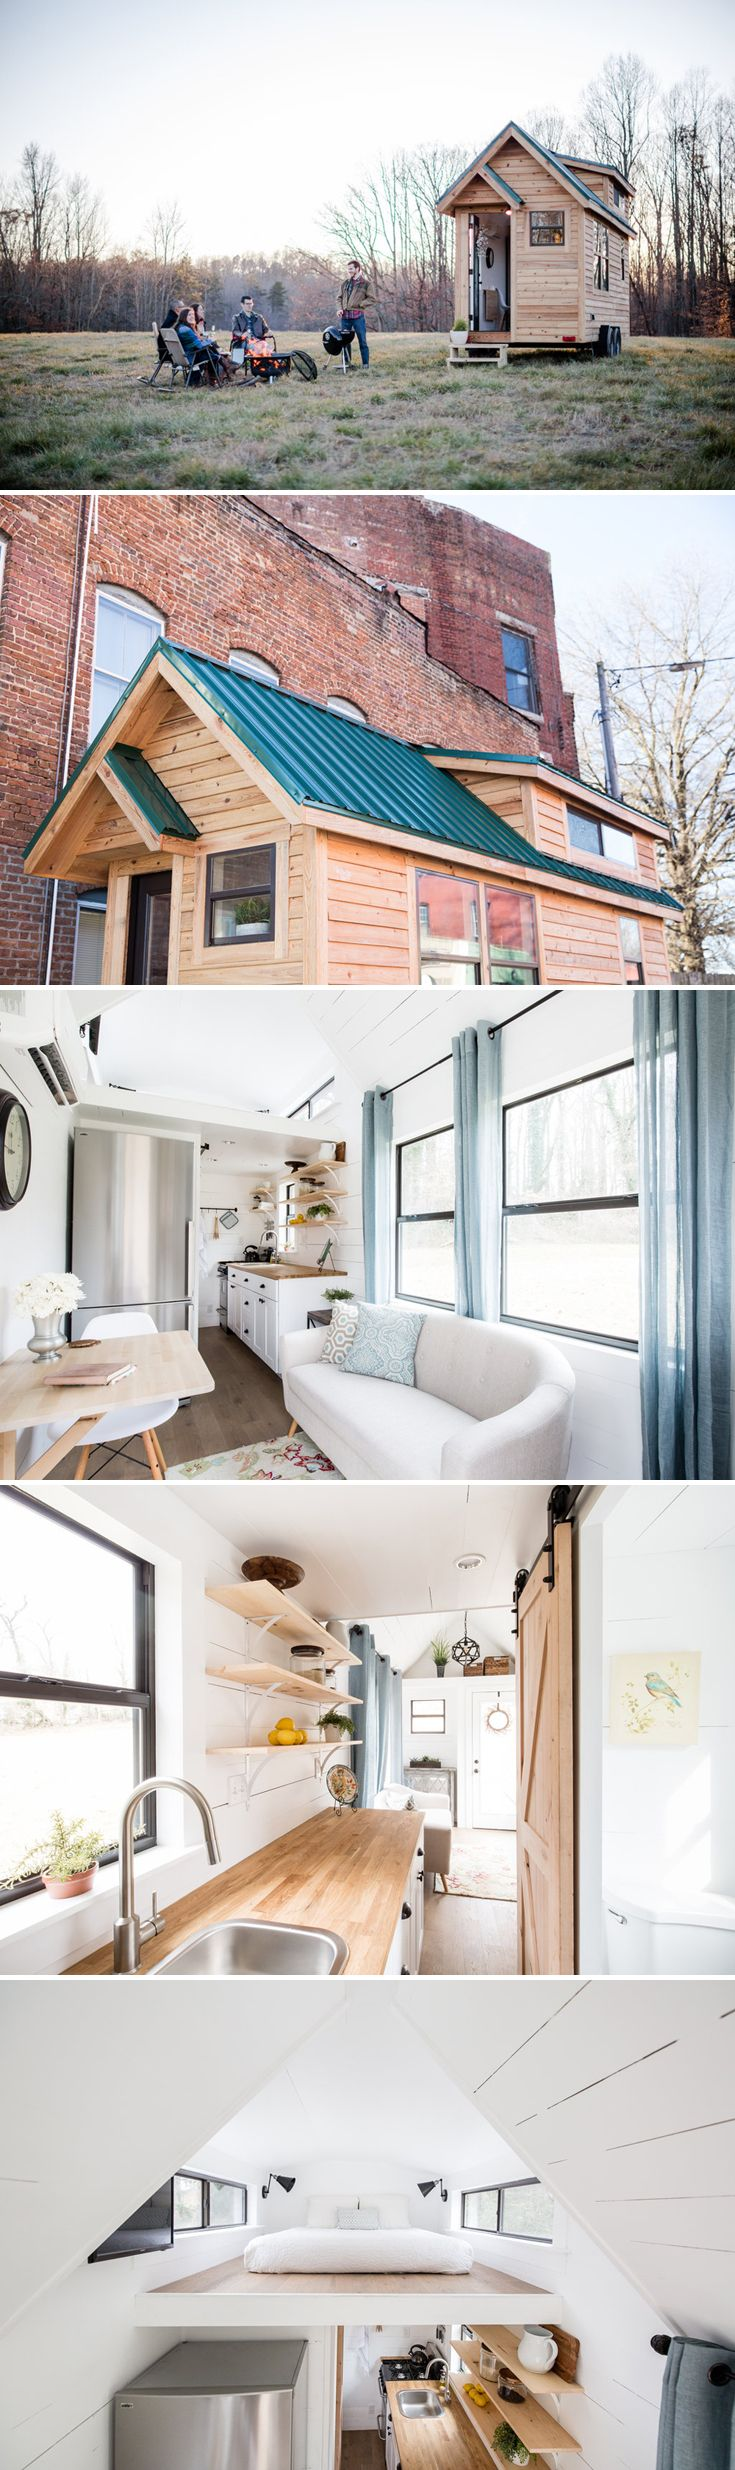 A 20' traditional style tiny house built by Tiny Life Construction in Greensboro, NC. Ideal for a couple or single person wanting to live the tiny life.